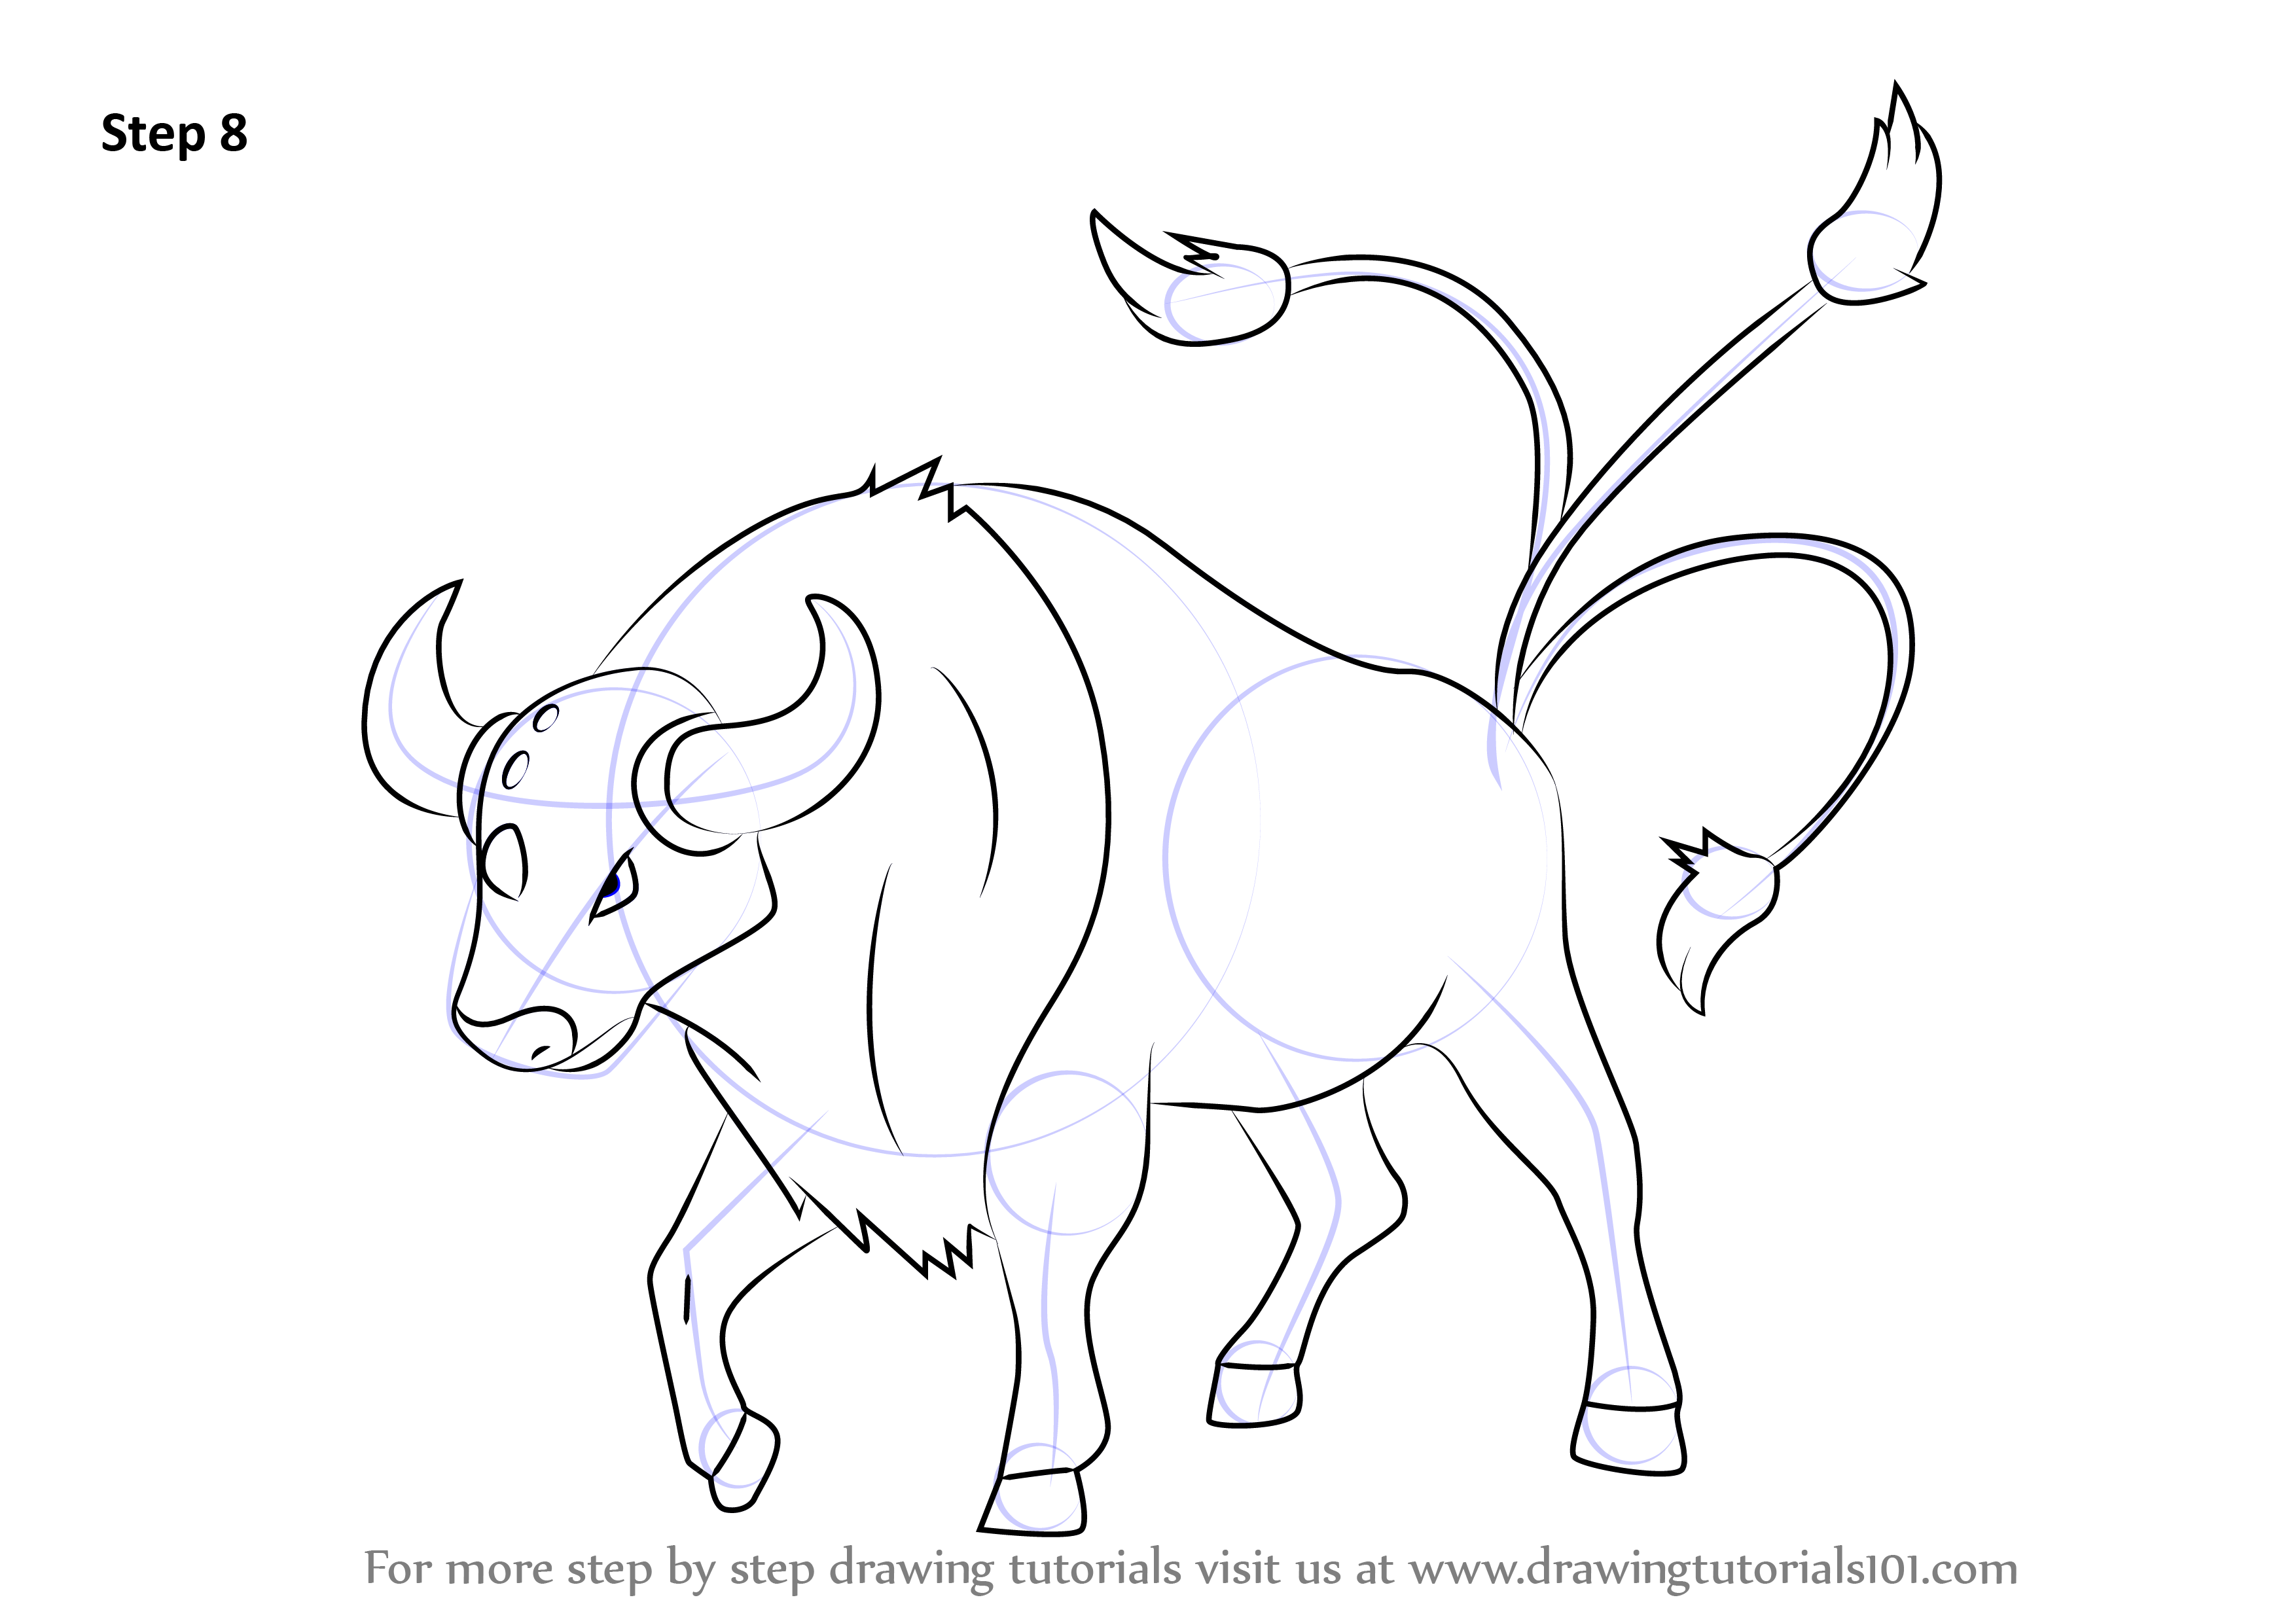 Learn How To Draw Tauros From Pokemon Pokemon Step By